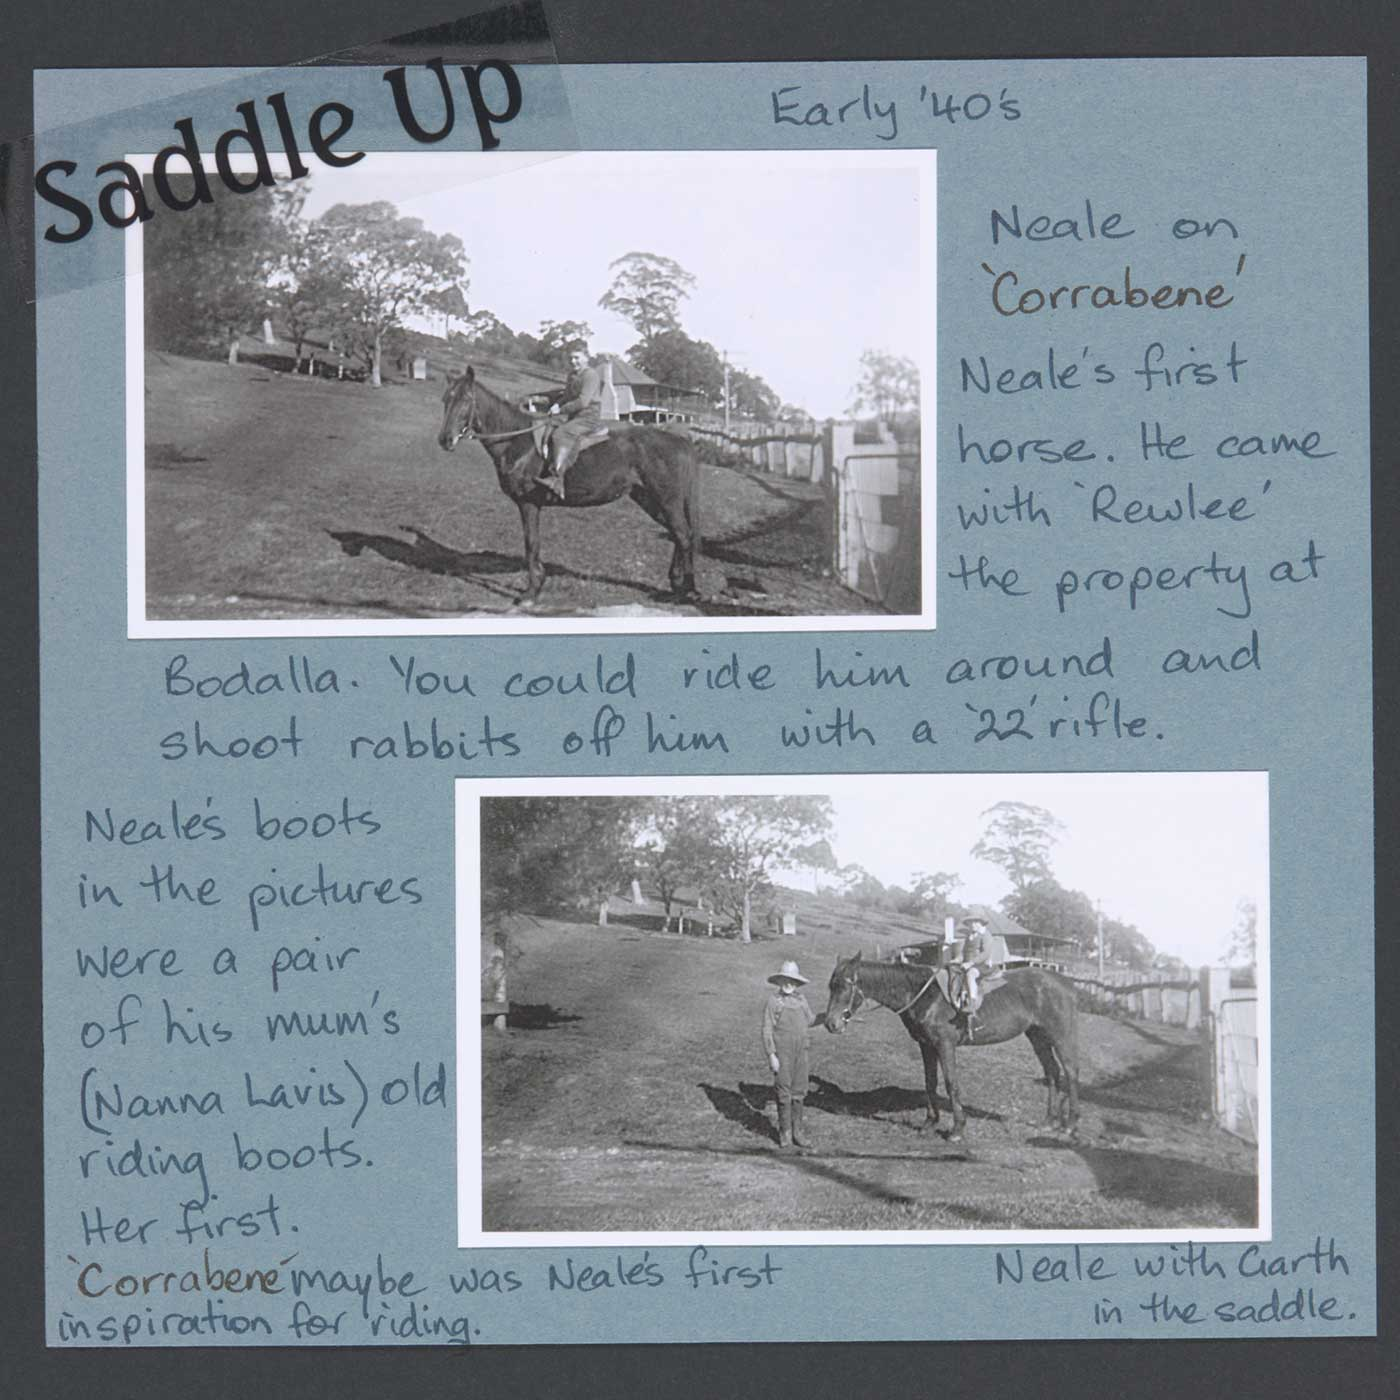 Neale riding Corrabene at 'Rewlee', near Bodalla, early 1940s - click to view larger image